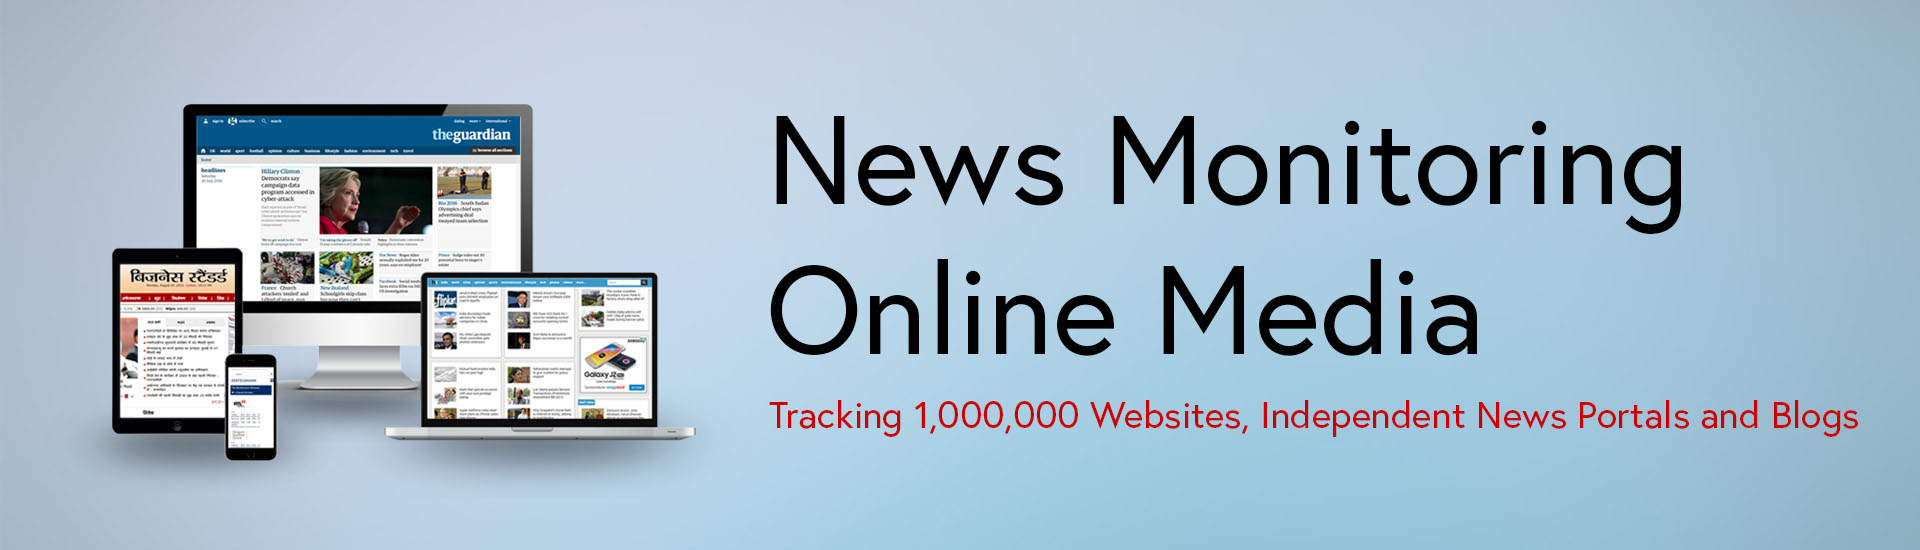 News Monitoring-Online Media